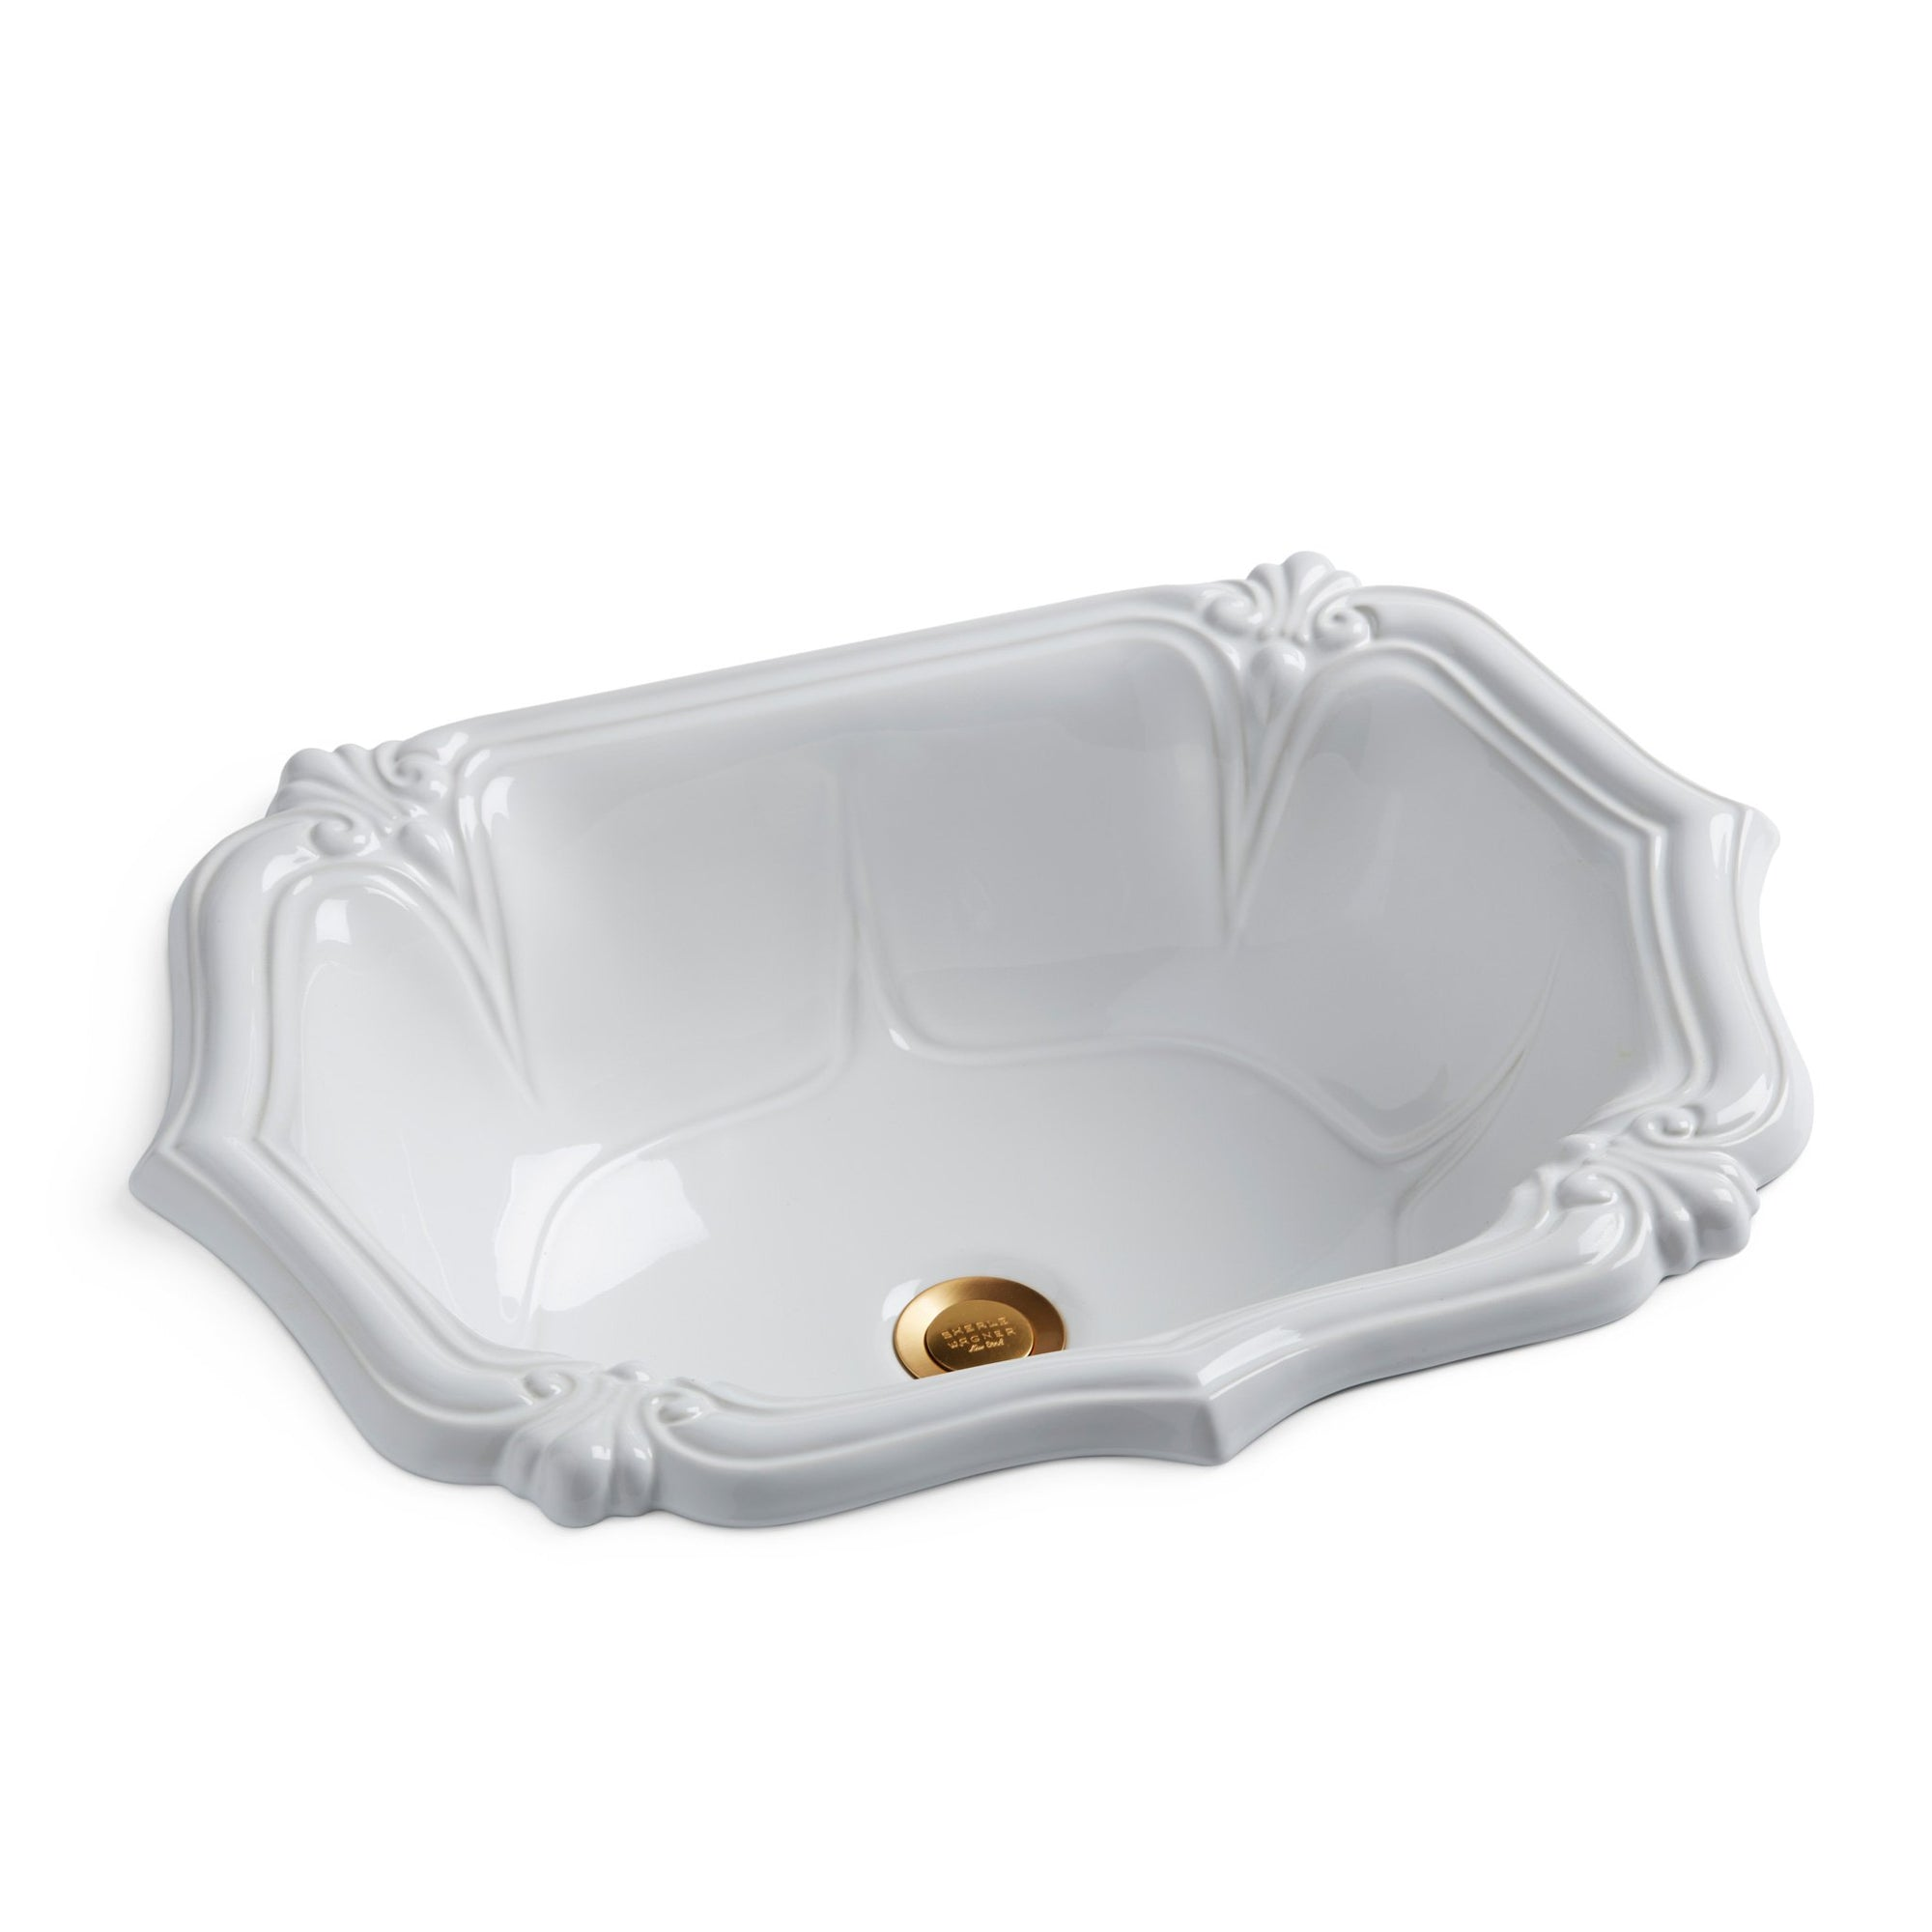 OE6-WHT Sherle Wagner International White Glazed Versailies Ceramic Over Edge Sink